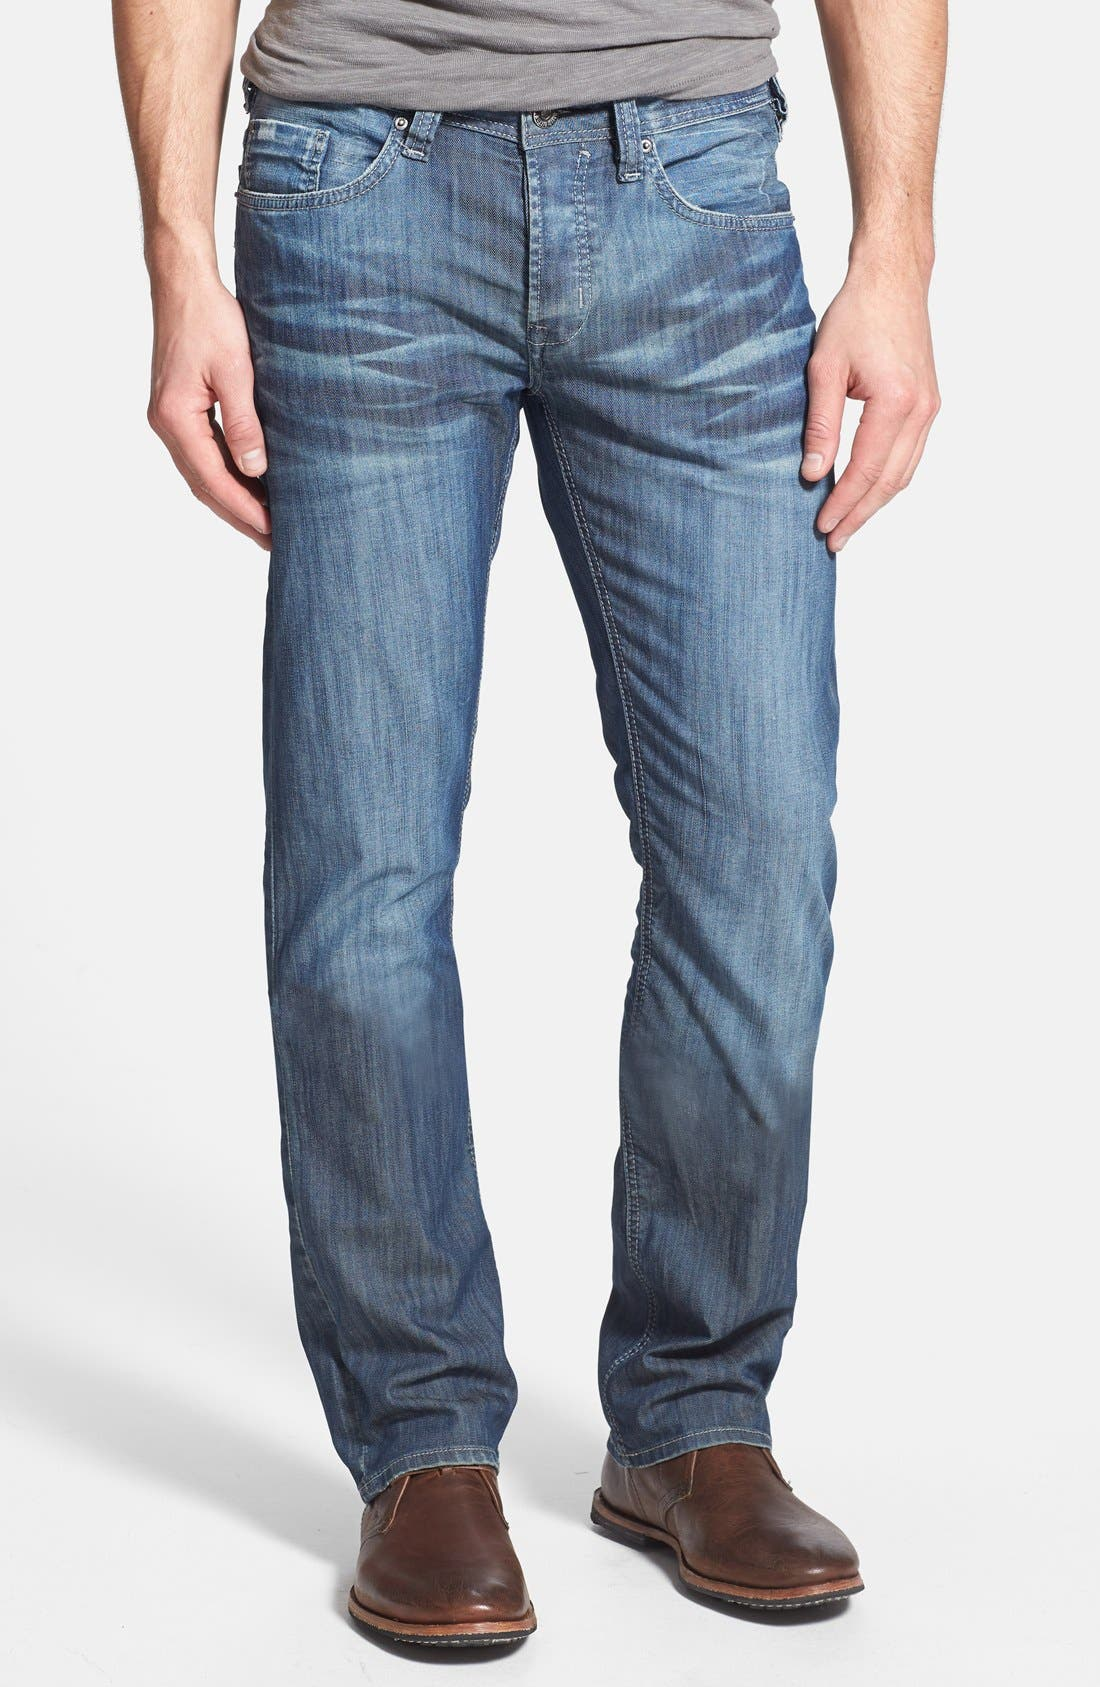 Alternate Image 1 Selected - Buffalo Jeans 'Evan' Slim Straight Leg Jeans (Distress)